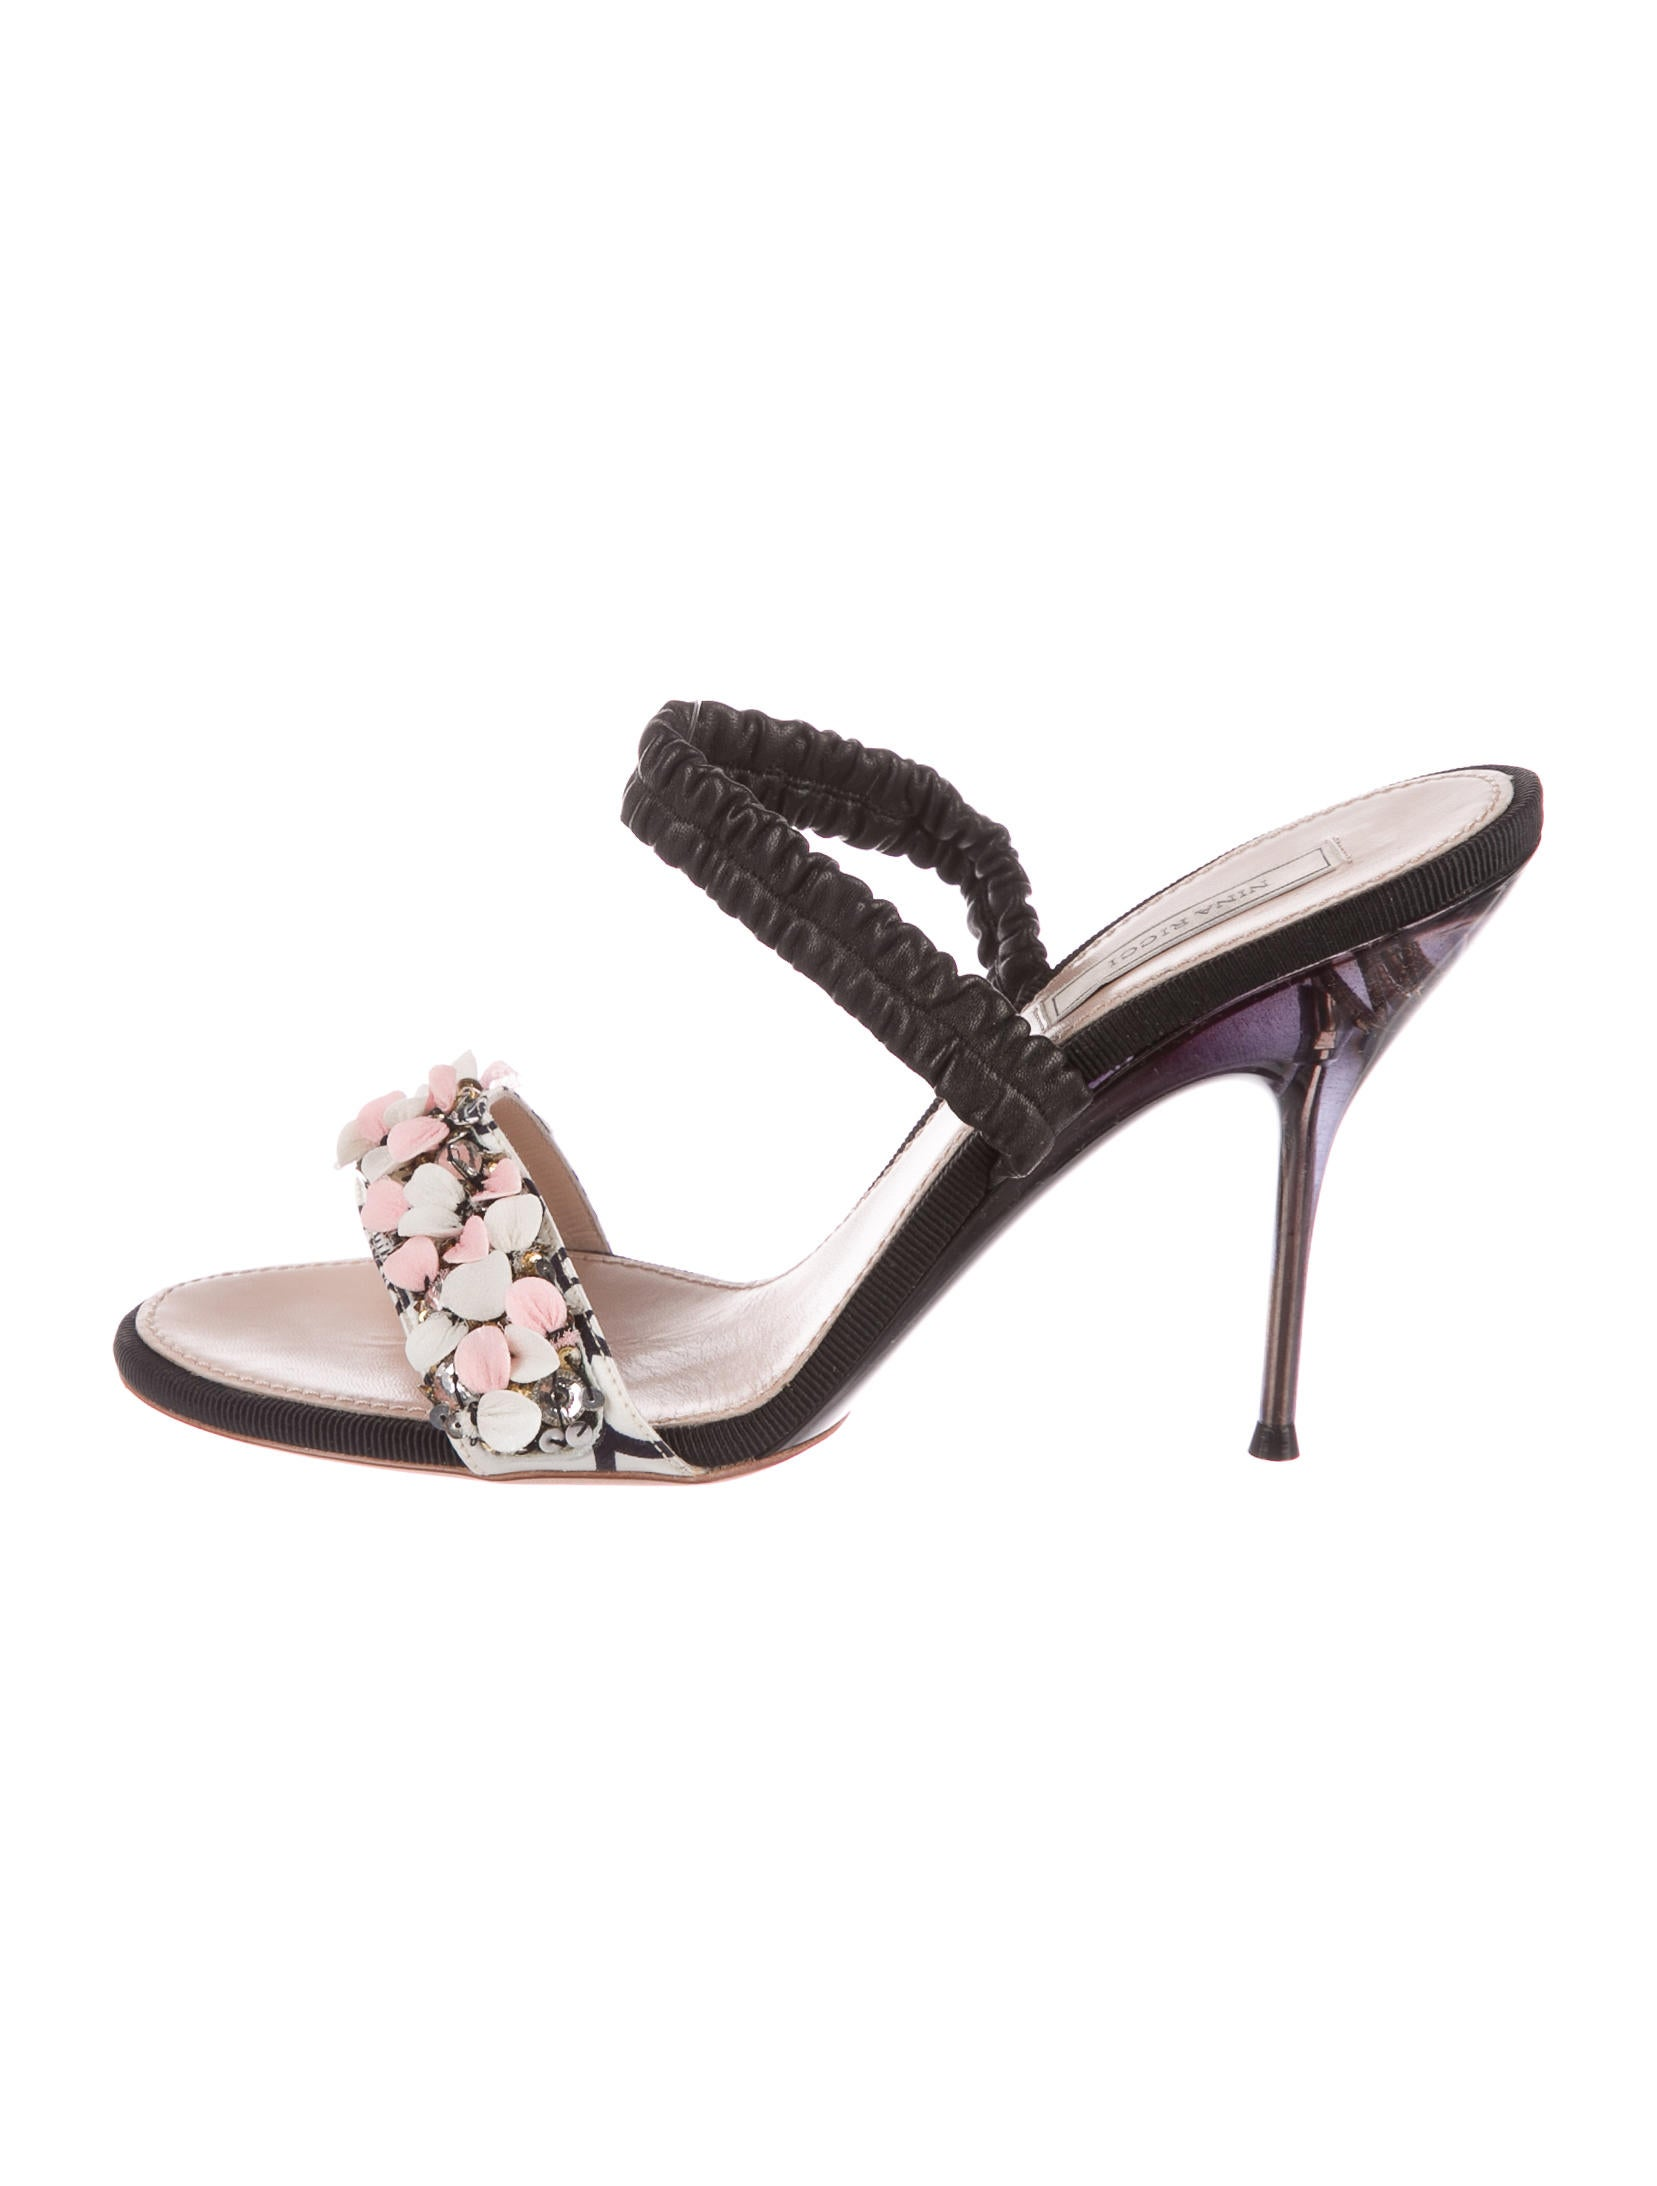 best seller for sale best place Nina Ricci Sequin-Embellished Leather Sandals free shipping extremely buy cheap really largest supplier sale online tzDqzQmH